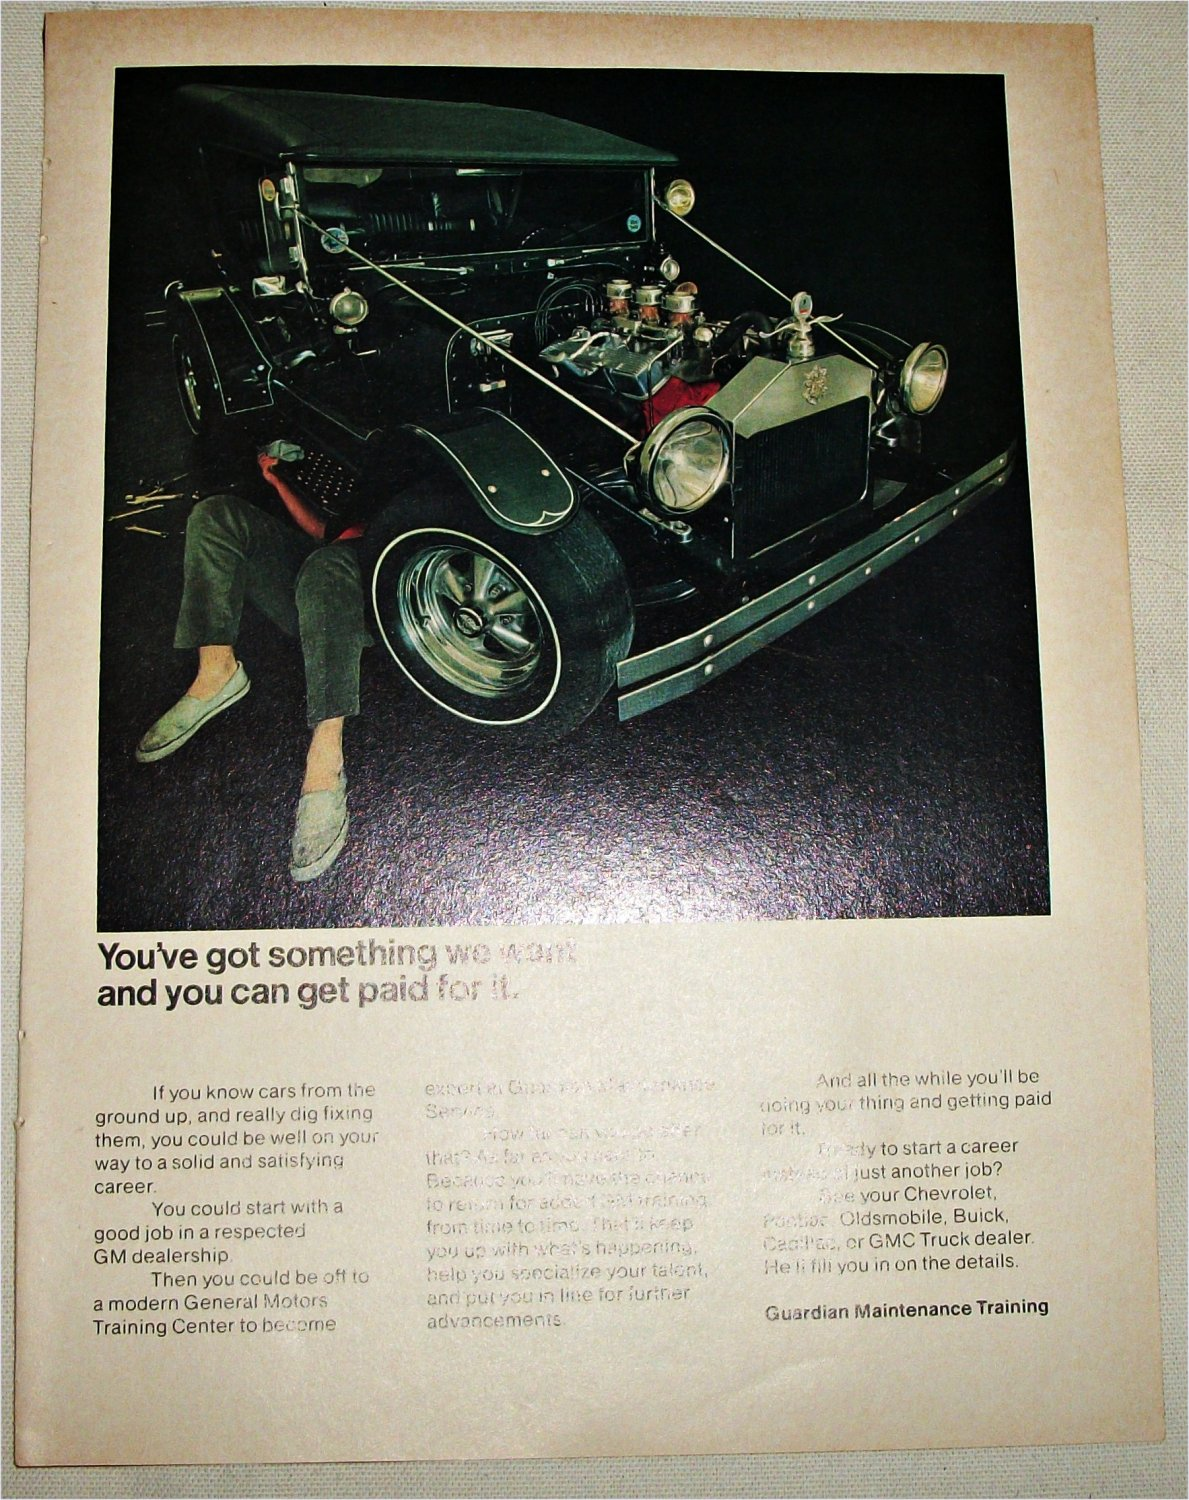 1969 Guardian Maintenance ad